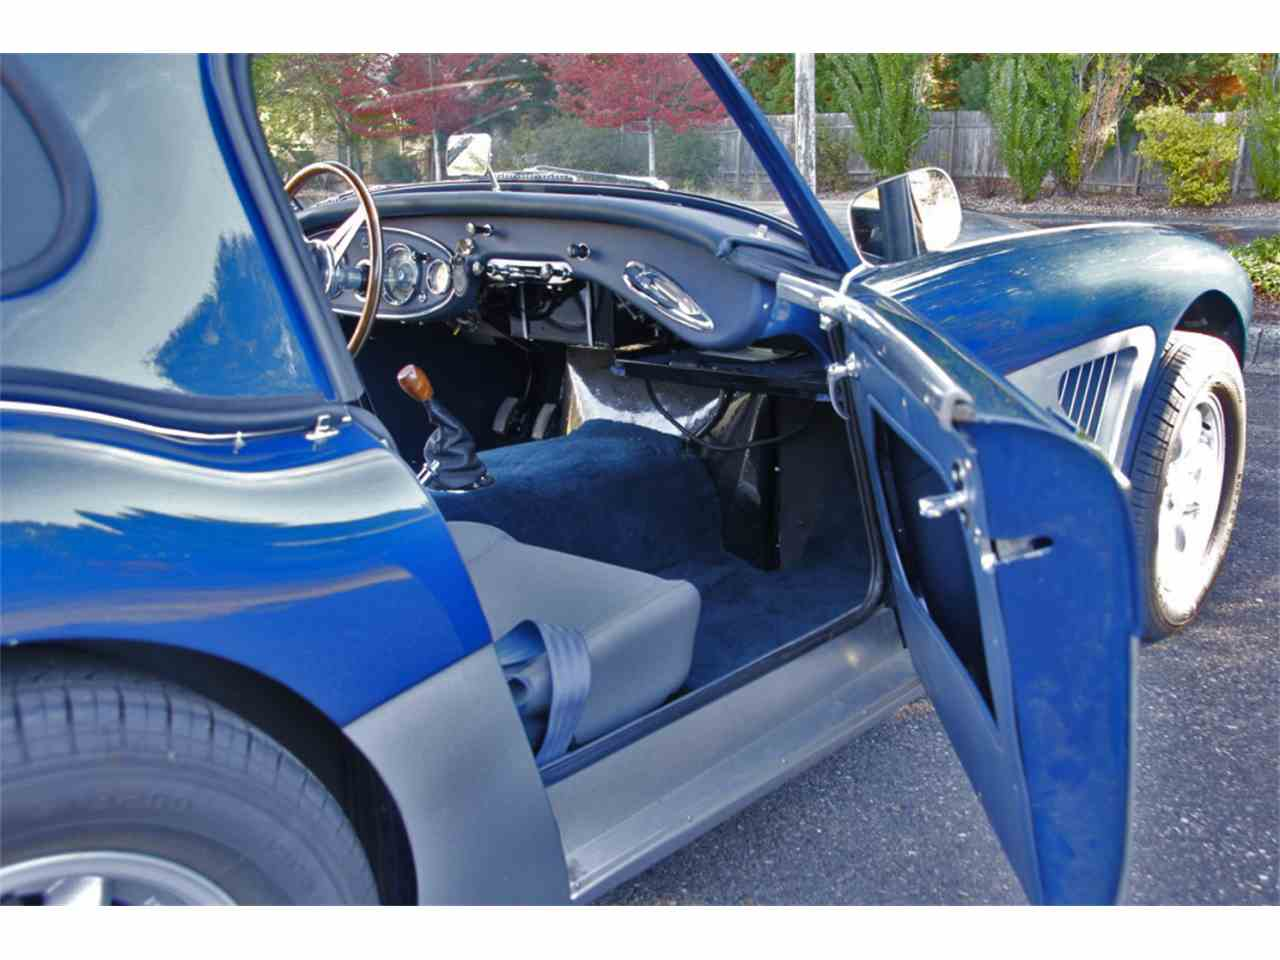 Large Picture of 1959 Austin-Healey 3000 Mark I BN7 Offered by a Private Seller - LU6O